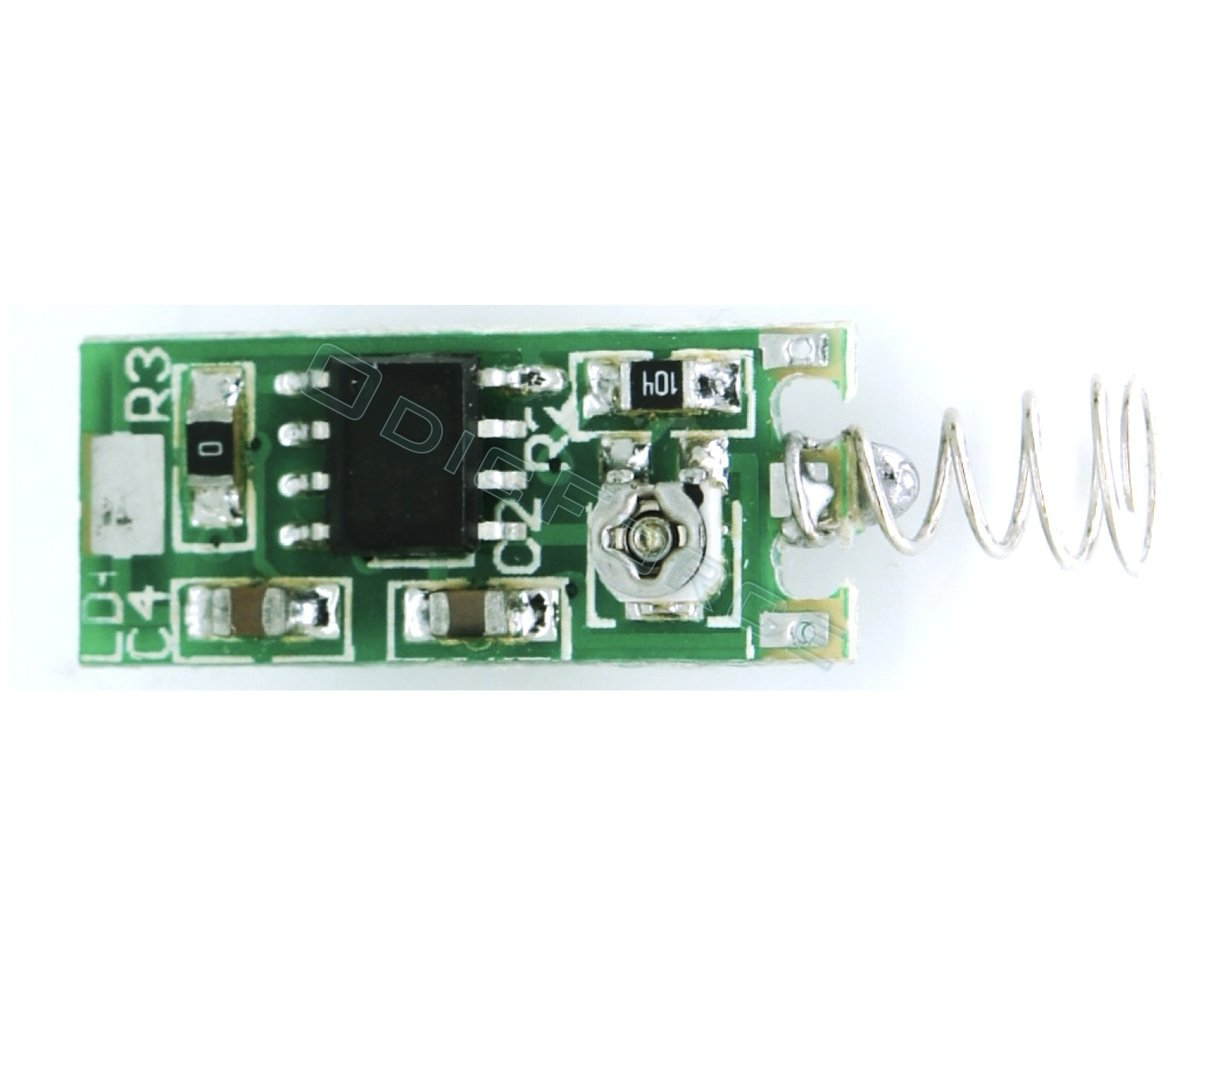 50 - 300mA LM358 Constant Current Driver, 3.5 -5.0V - Hand-held lasers and Modules